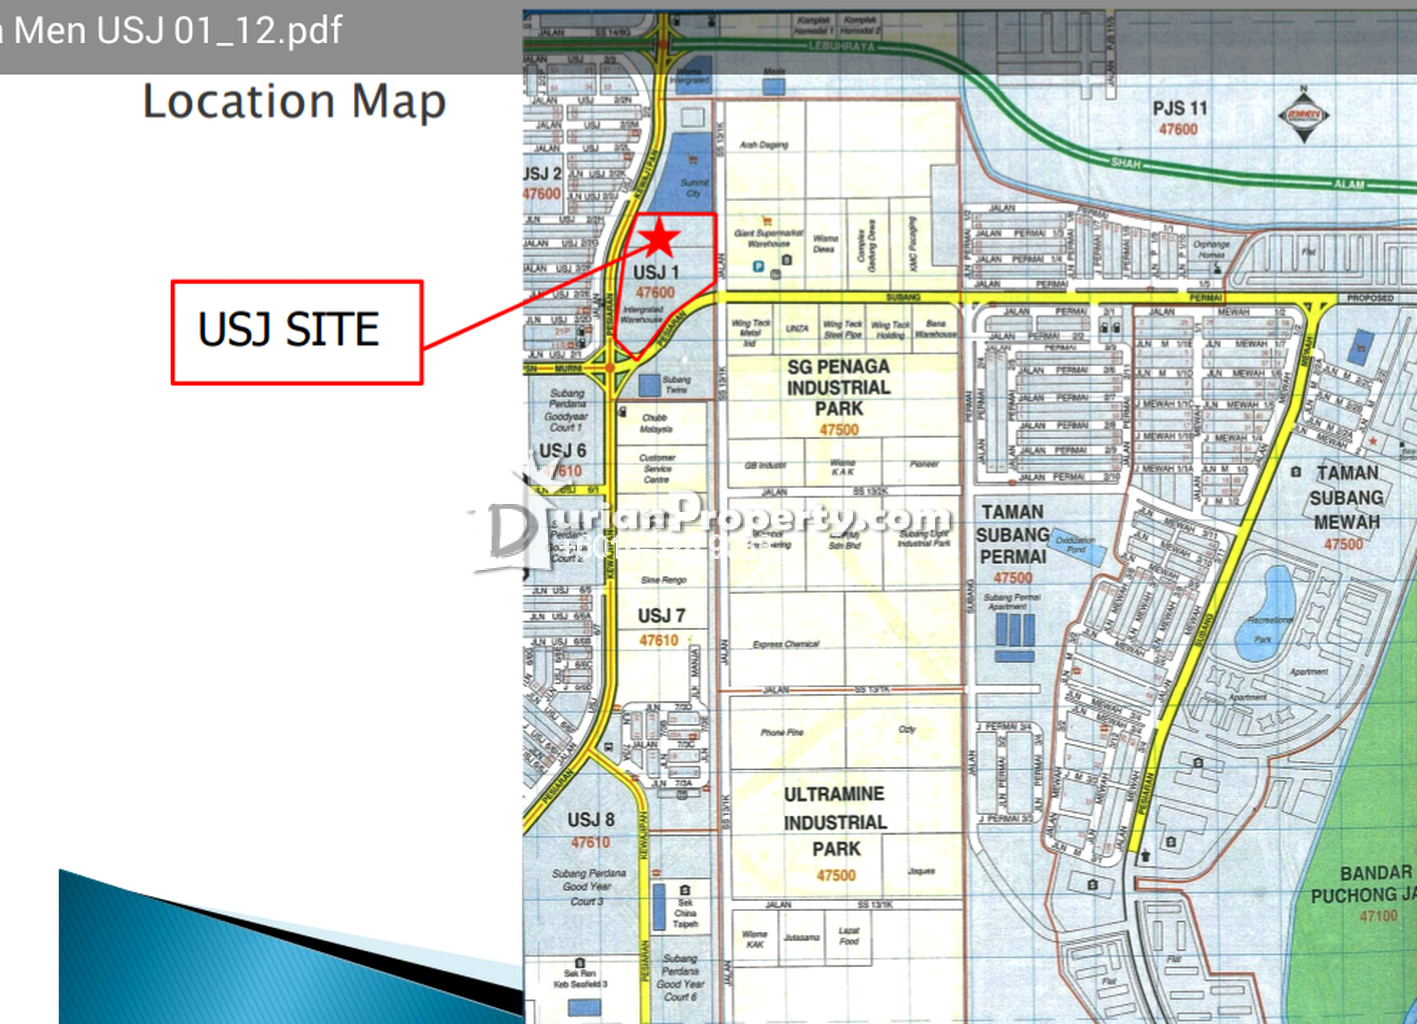 Office For Rent At USJ  USJ For RM  By Castilia Tan - Usj 1 location map